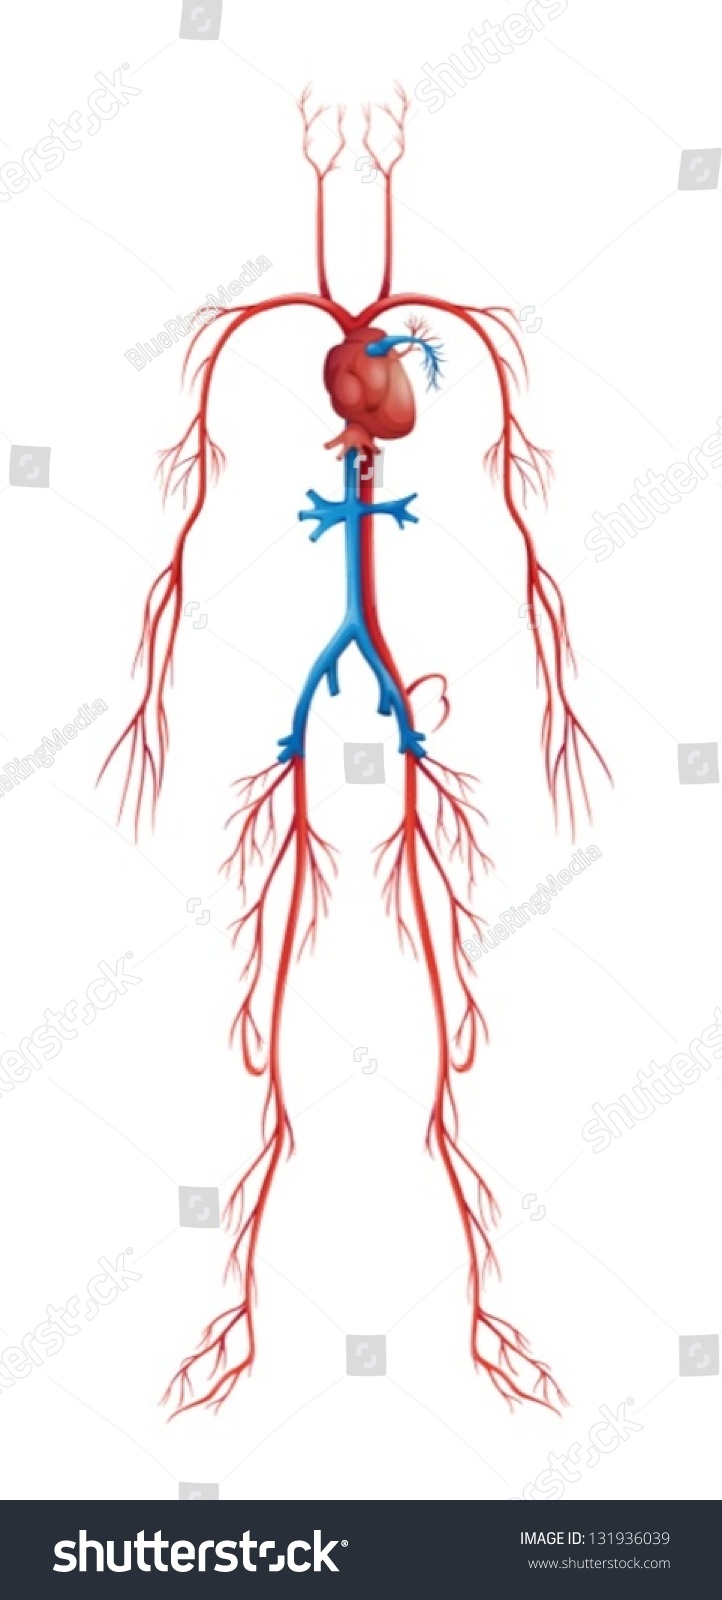 Illustration Isolated Human Circulatory System Stock Vector Royalty